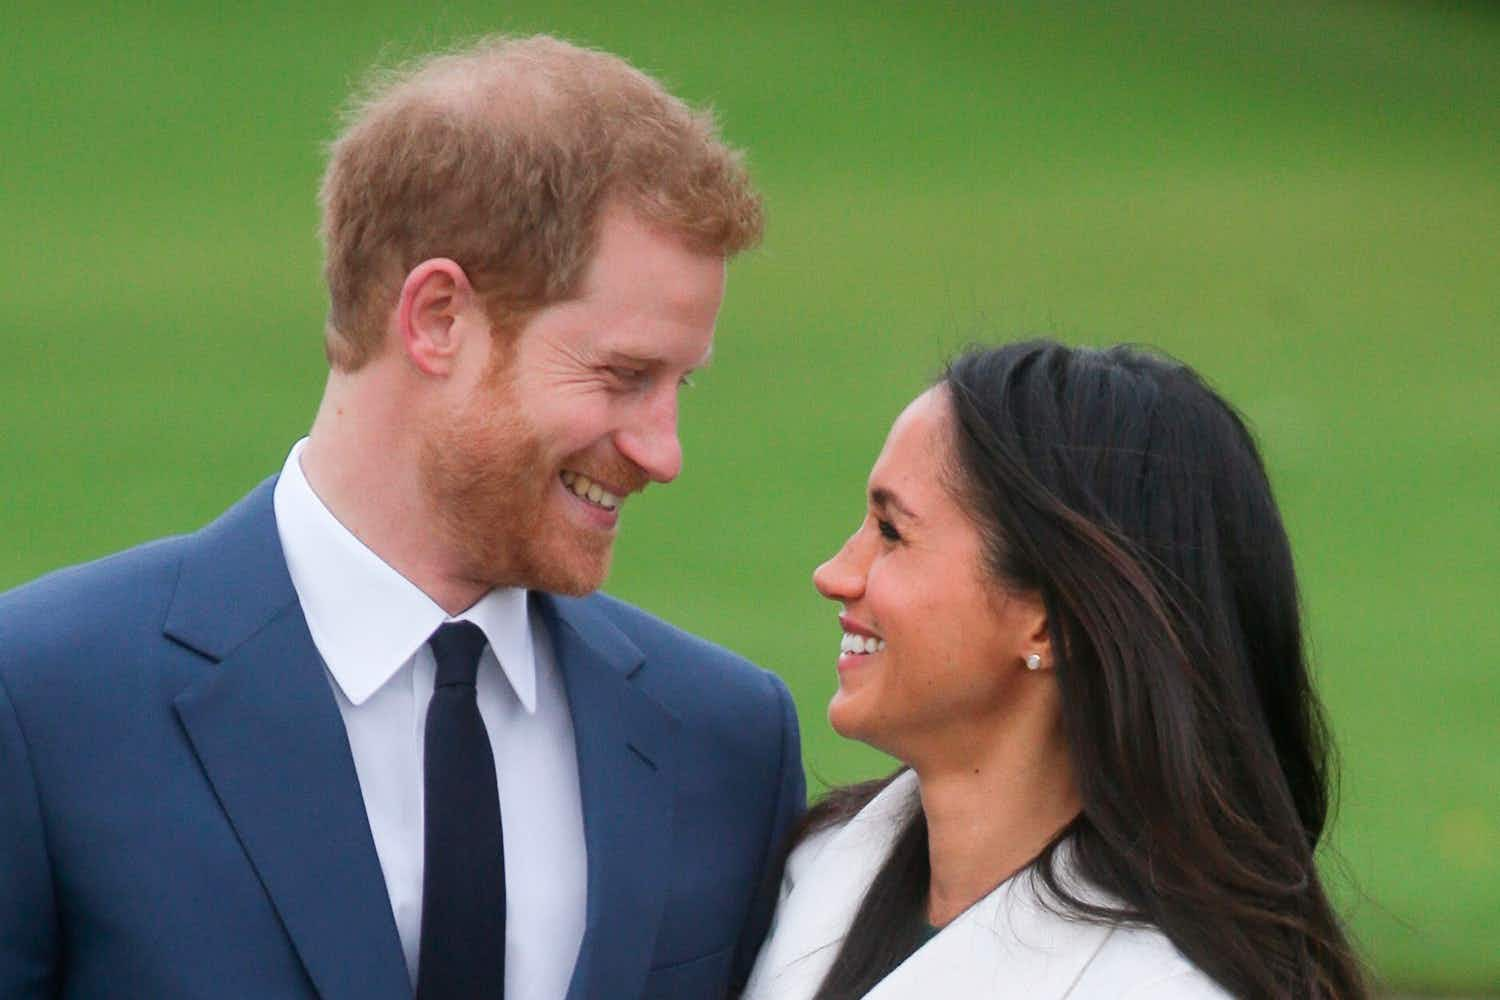 The most likely honeymoon destinations for Harry and Meghan